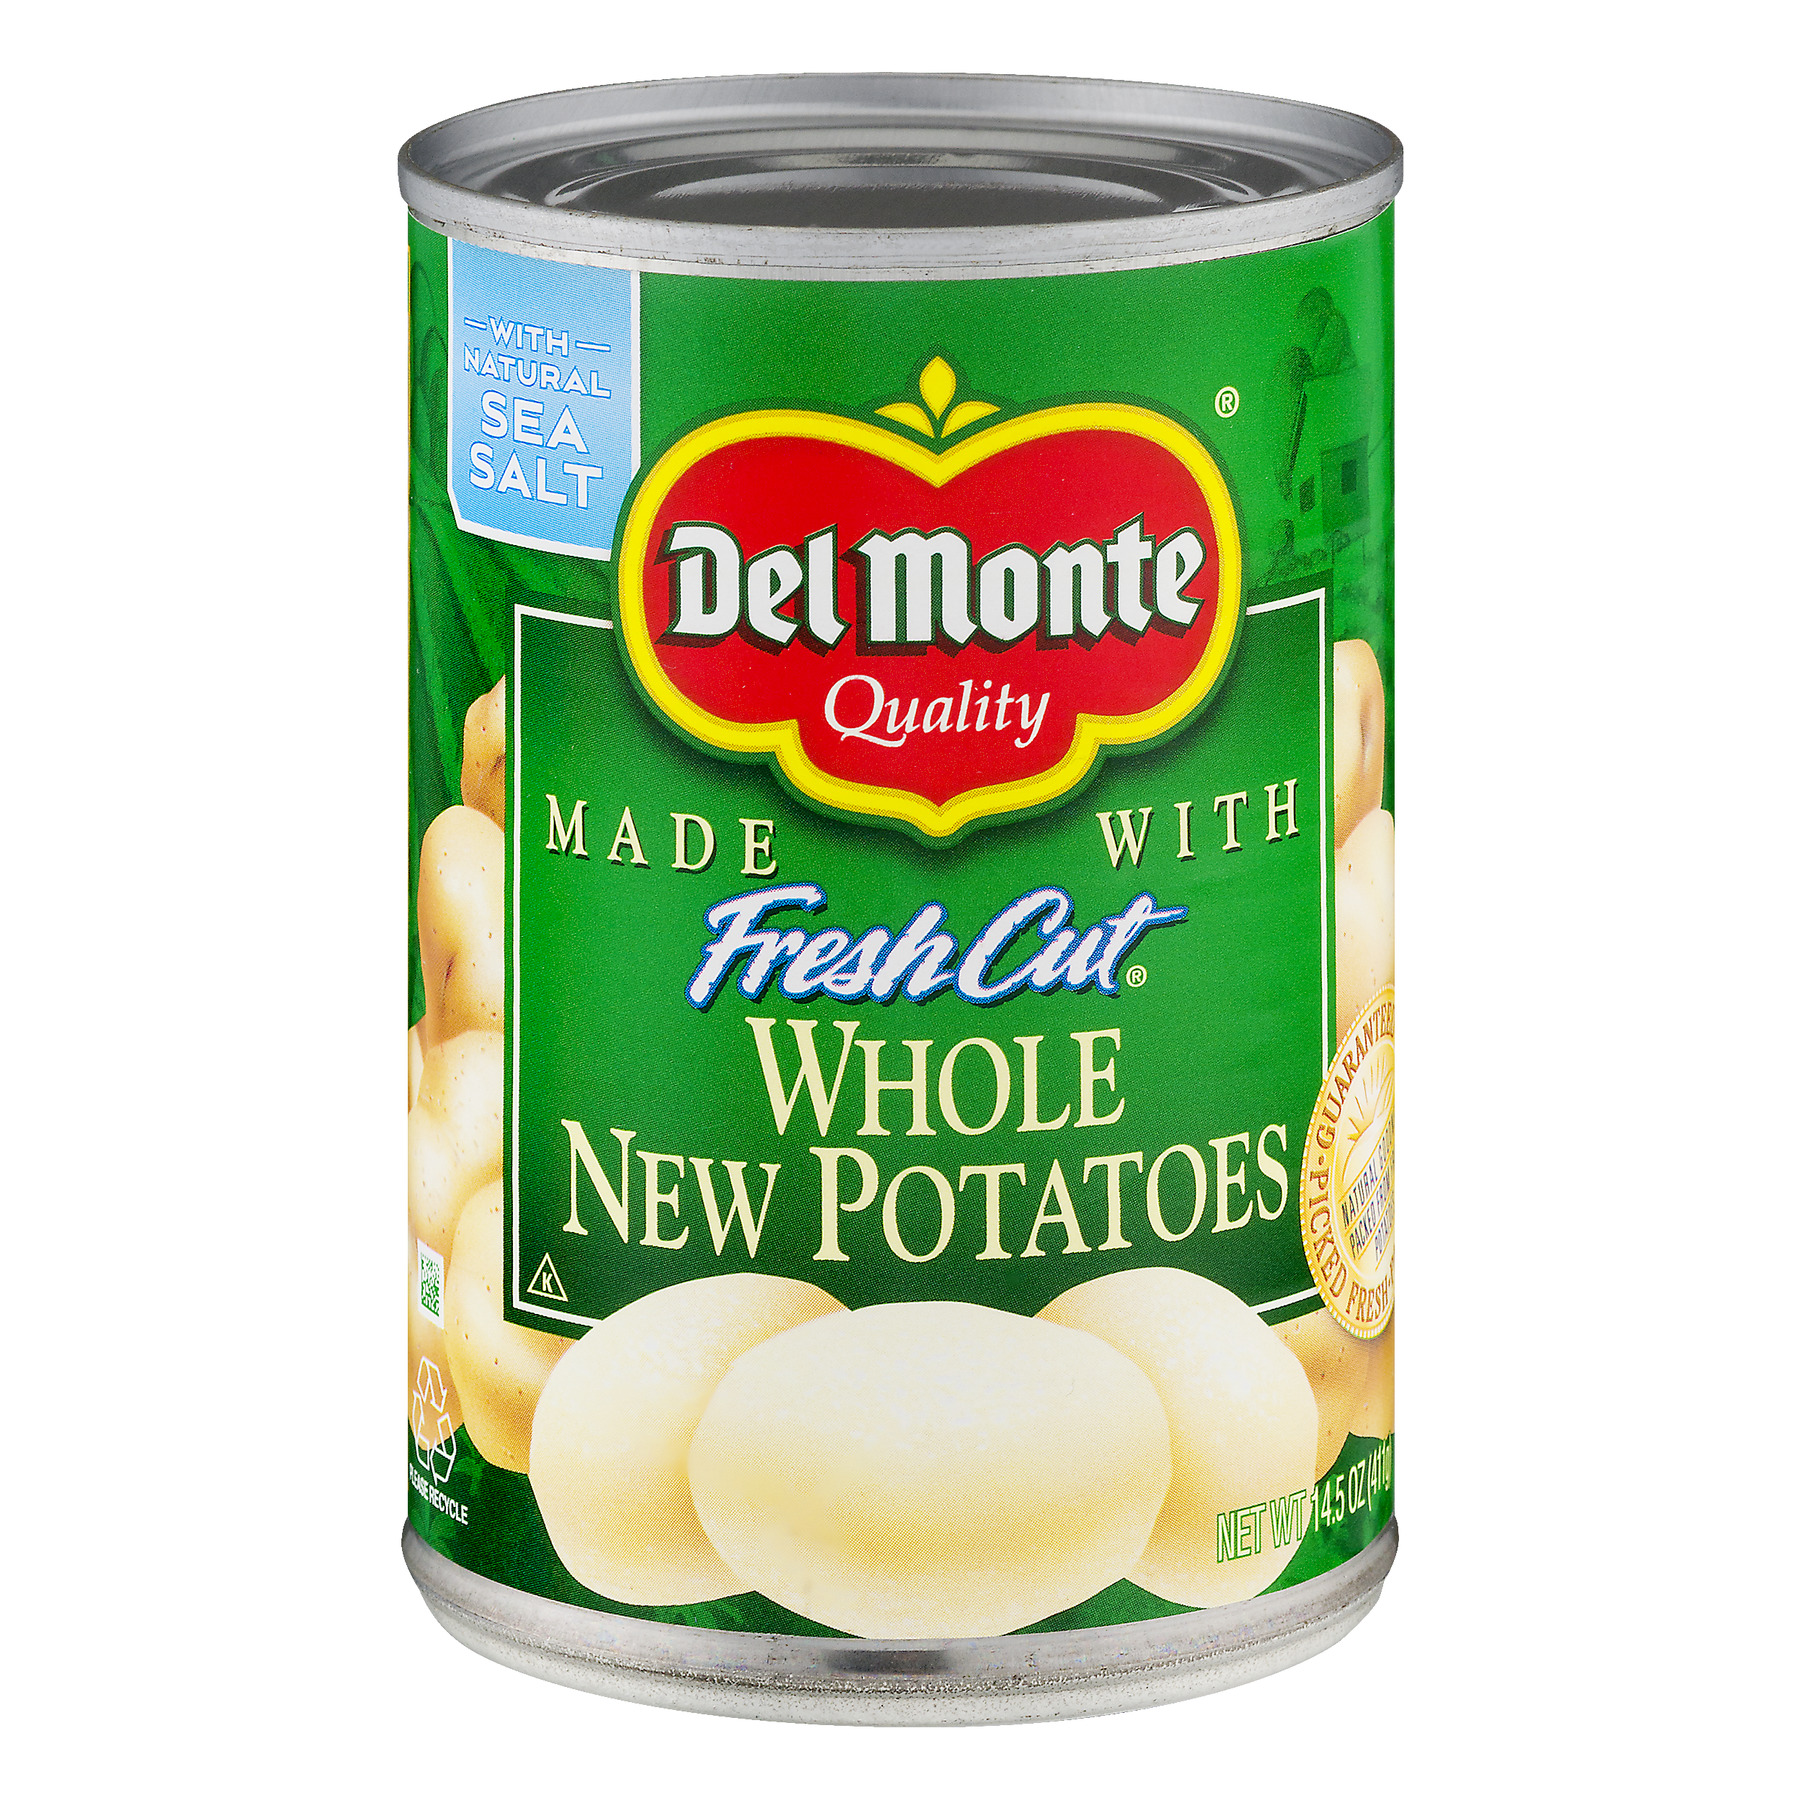 Del Monte Whole New Potatoes, 14.5 Oz